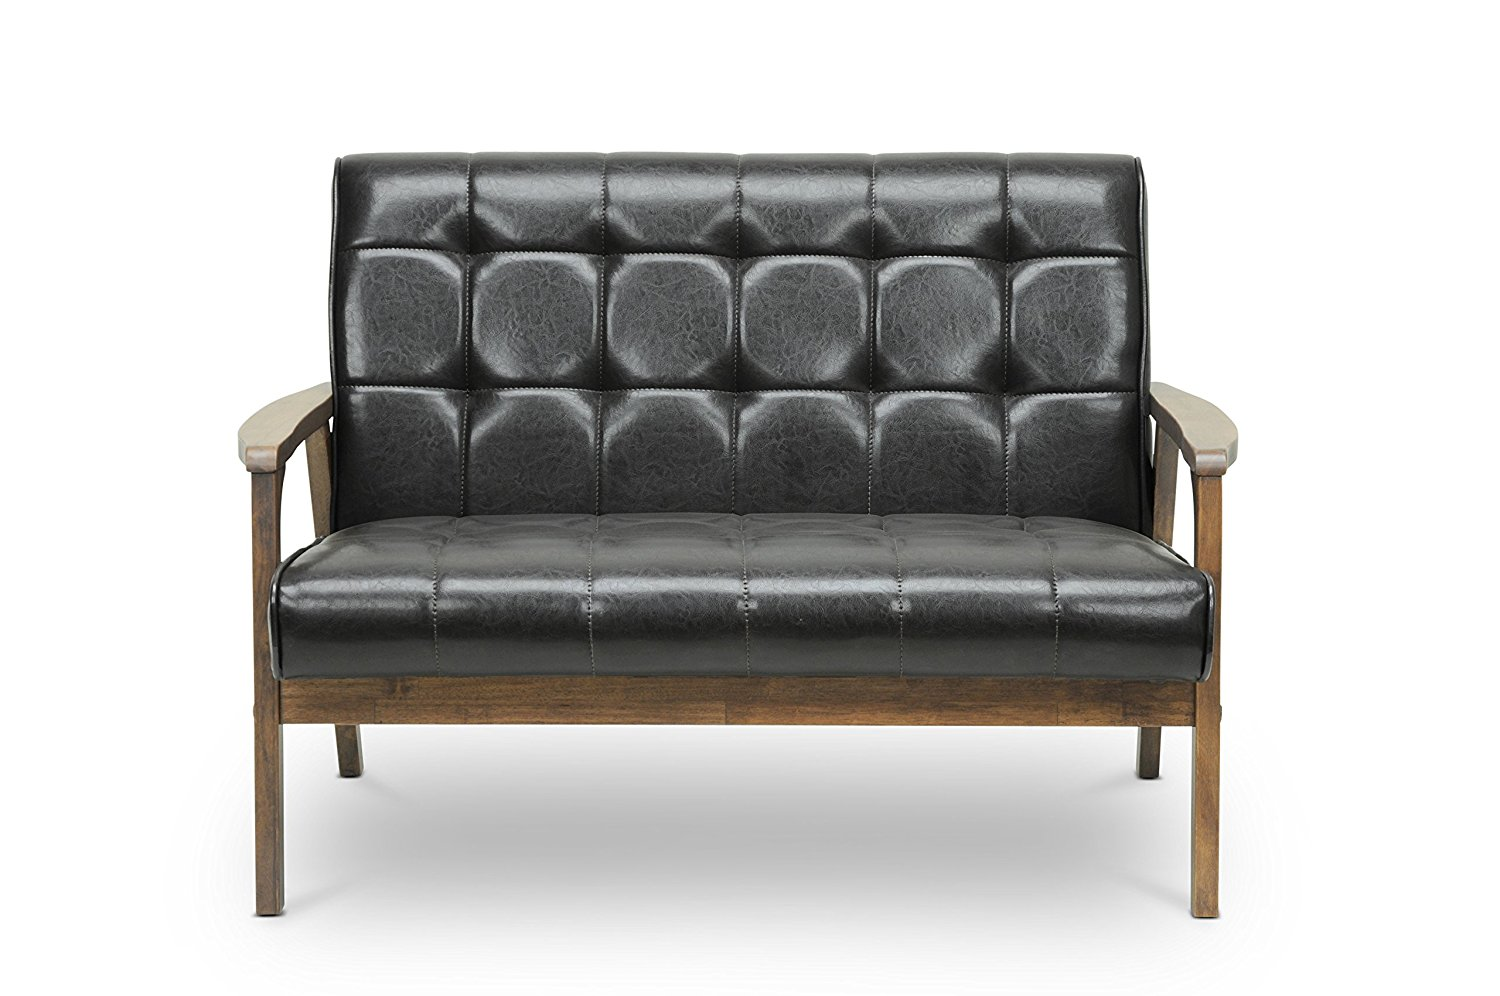 Baxton studio loveseat is a nice leather loveseat to have